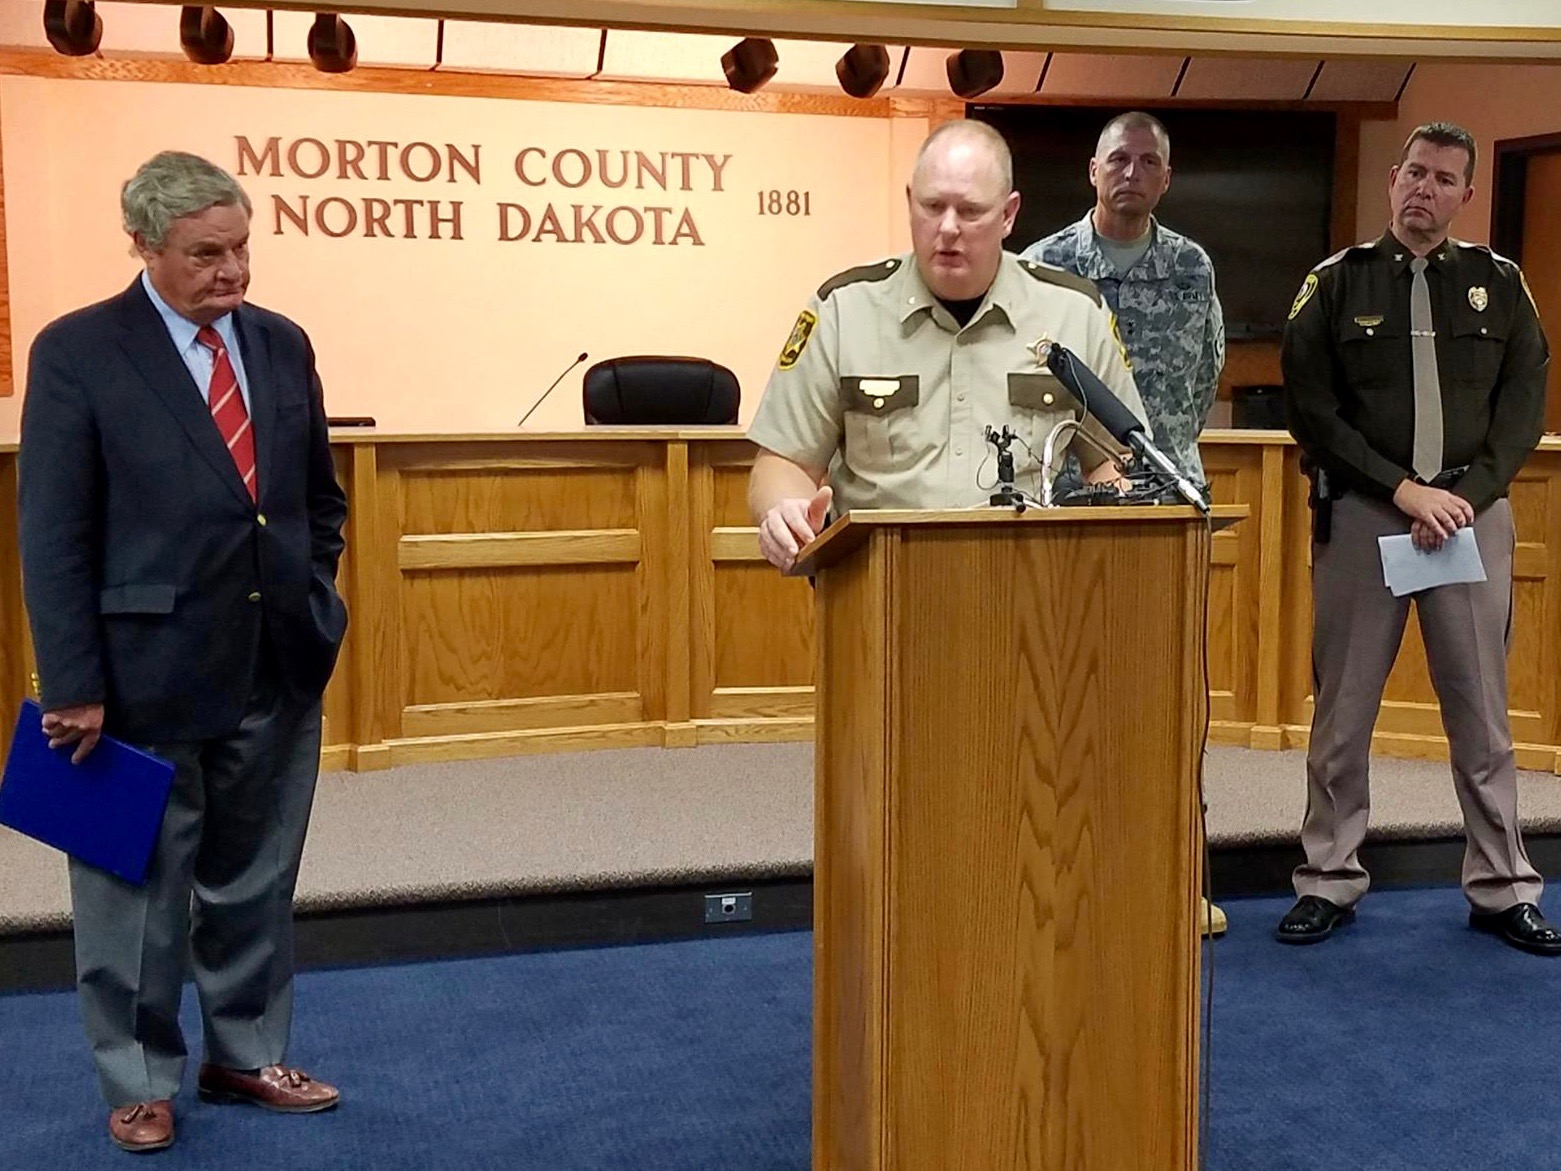 County sheriff leads investigation into #NoDAPL confrontation amid questions about role